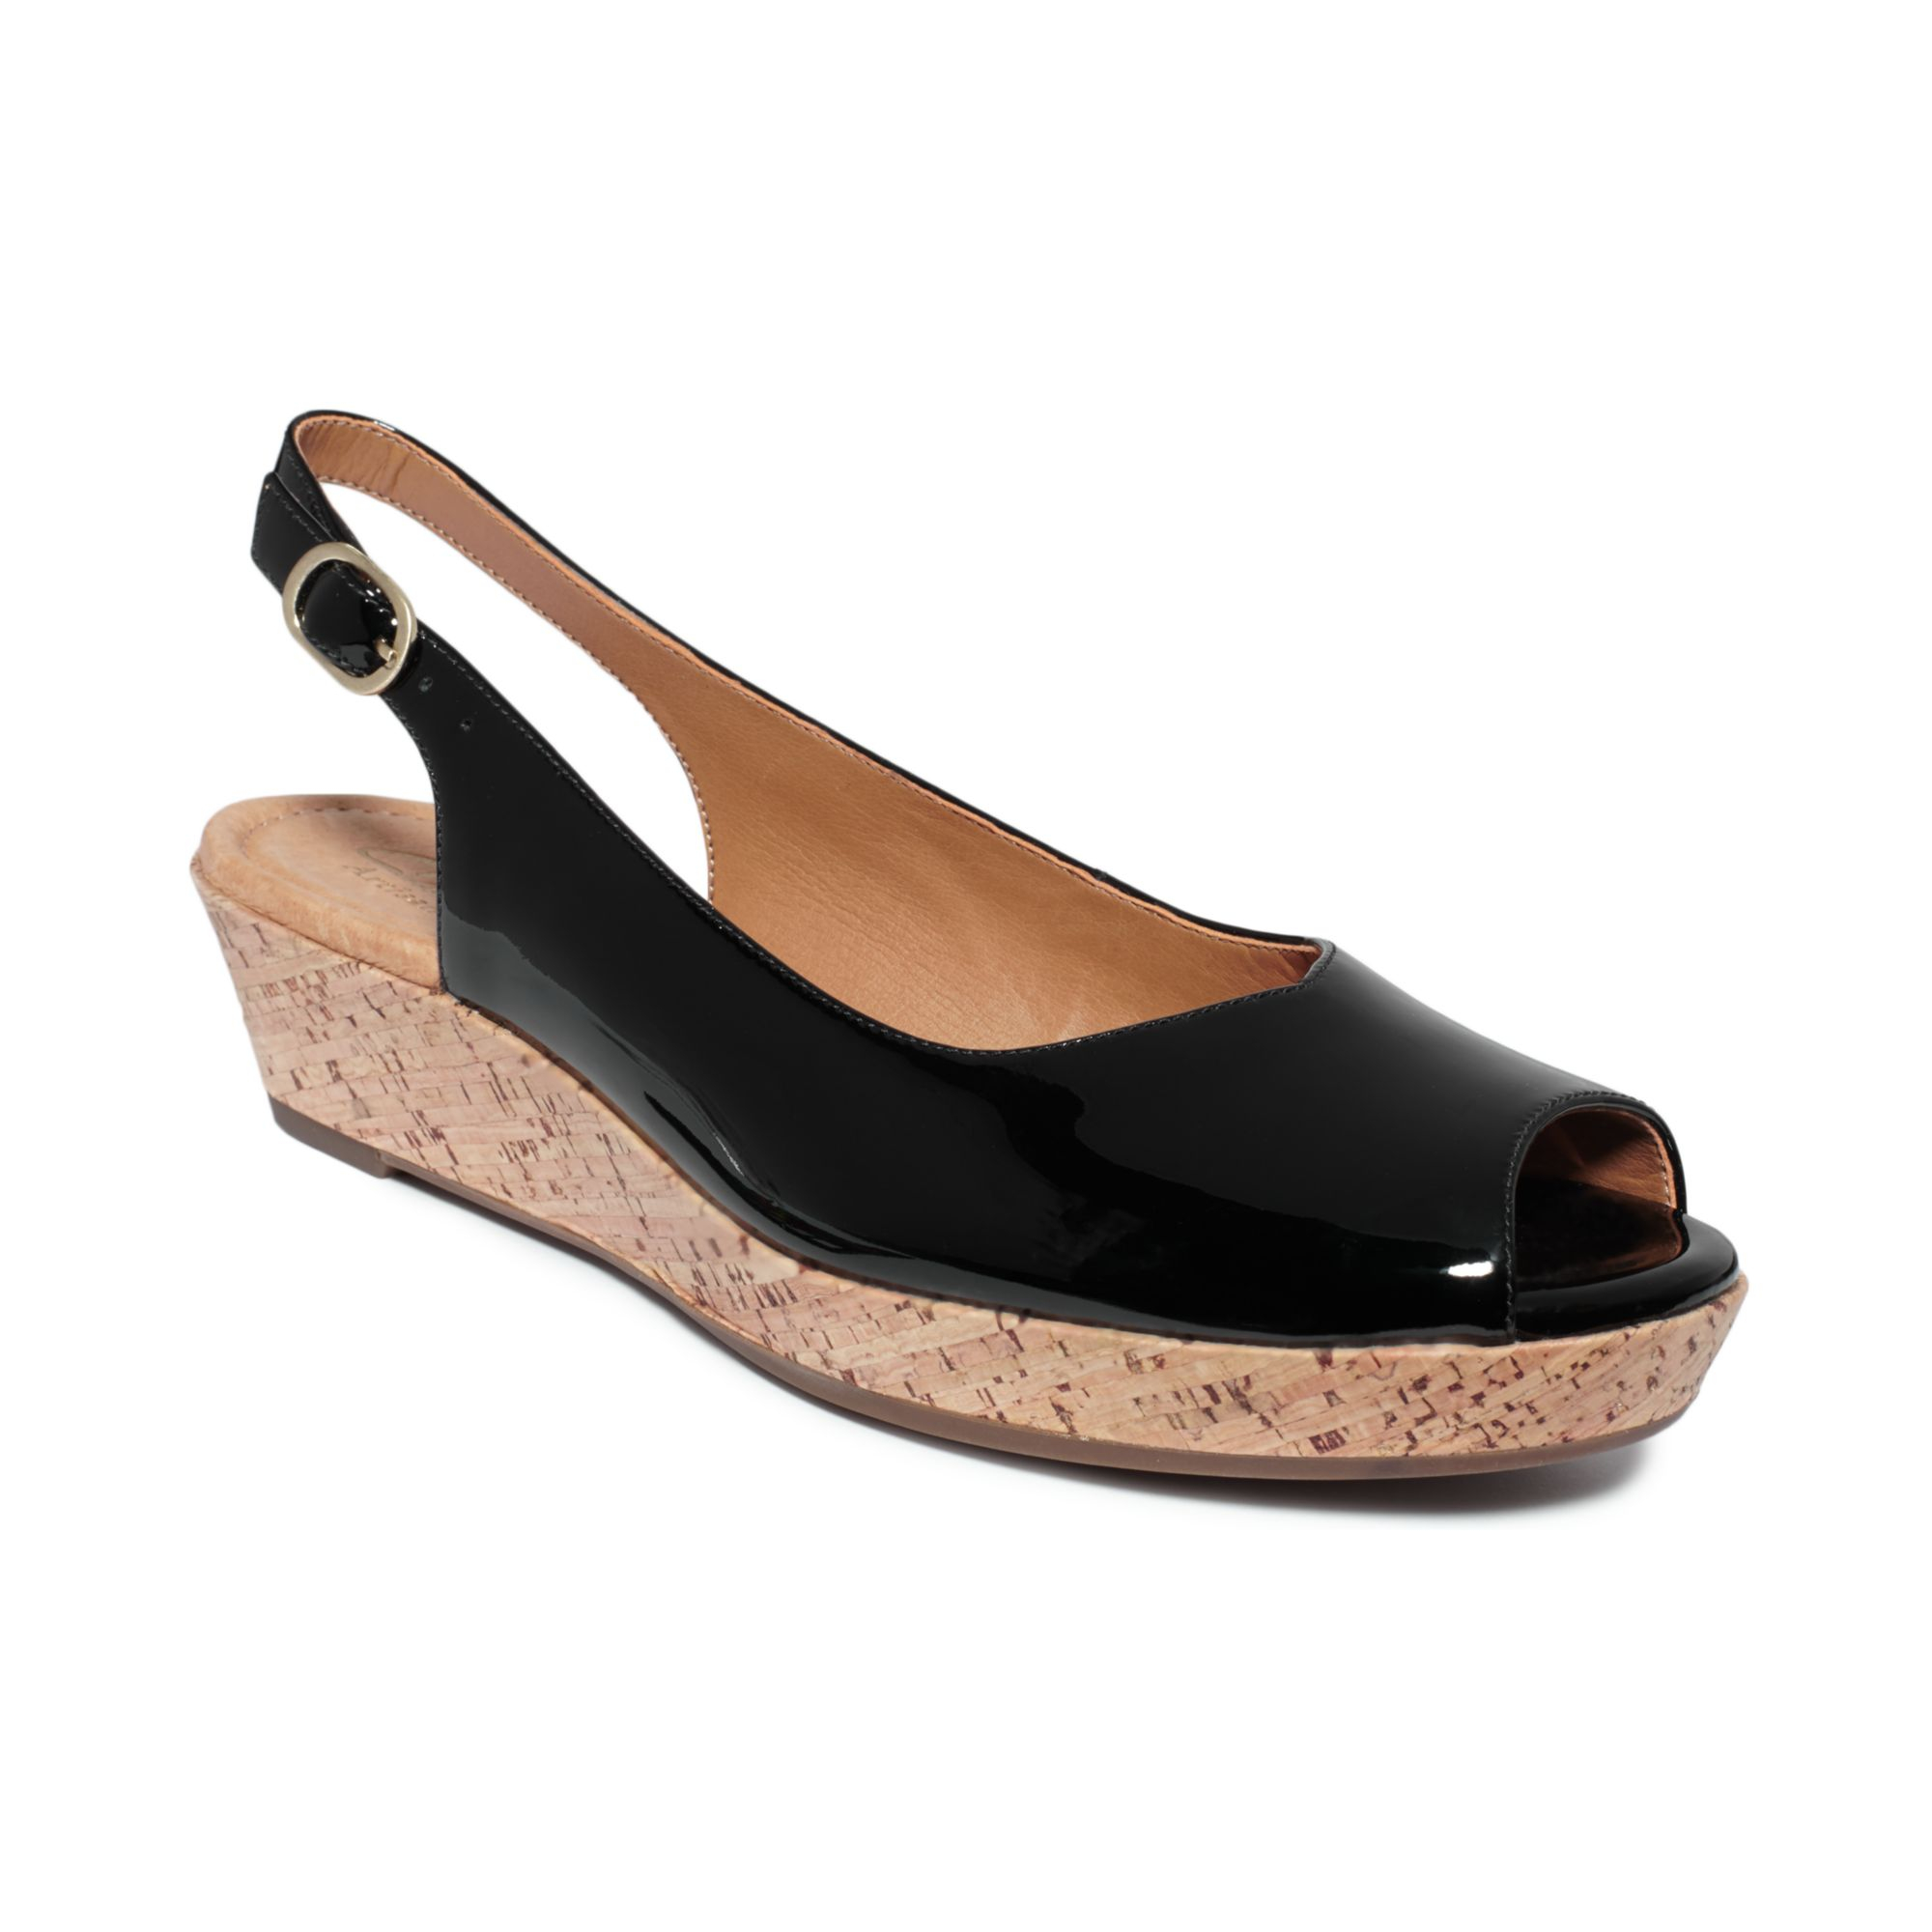 Lastest Look At All That Cushiony Support! Look At The The Shiny Copper Patent! Look At The Stylish Cork Wedge! Look At The Ant The Alameda Is By Far My Favorite Clarks Sandal This Season From The Artisan Line, No Comfort OR Style Detail Has